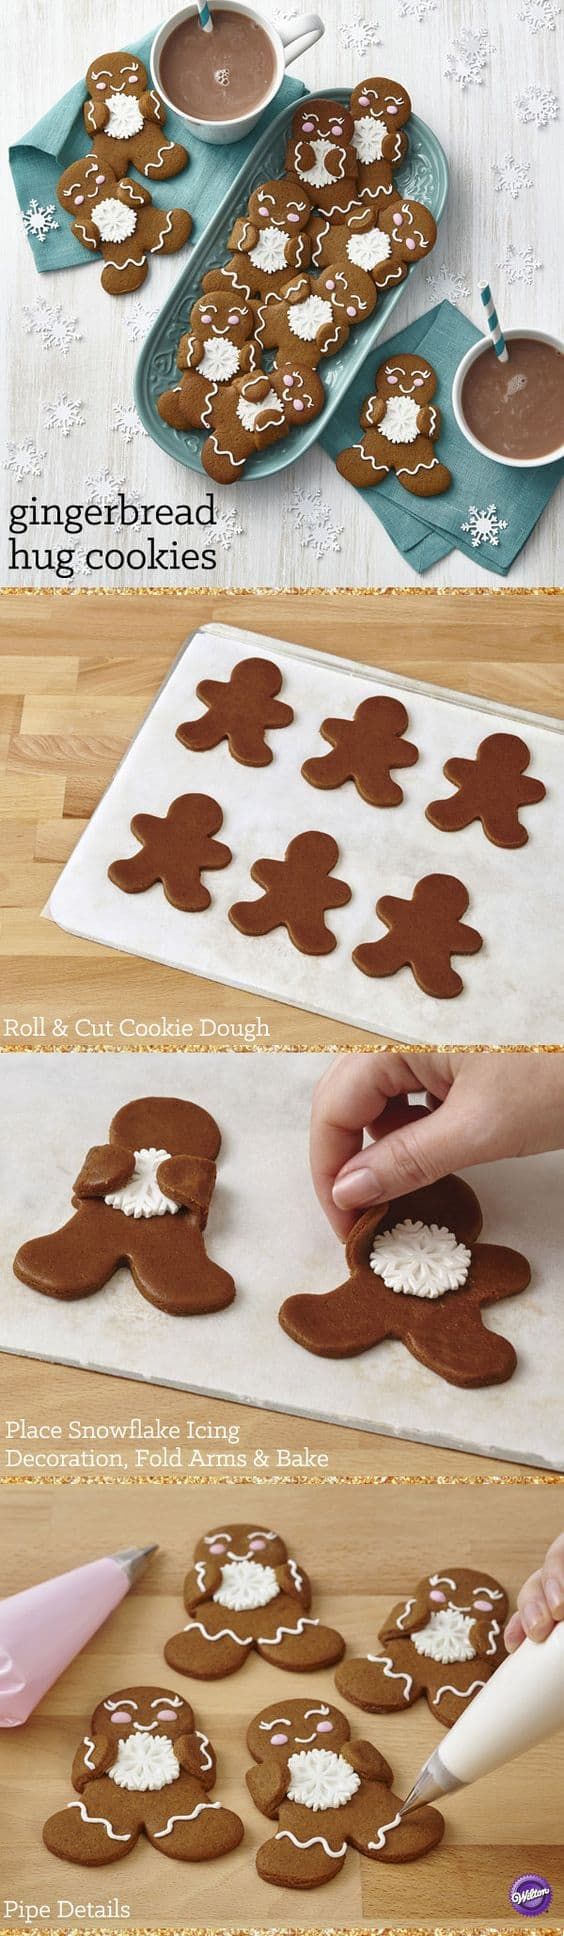 gingerbread-hug-cookies